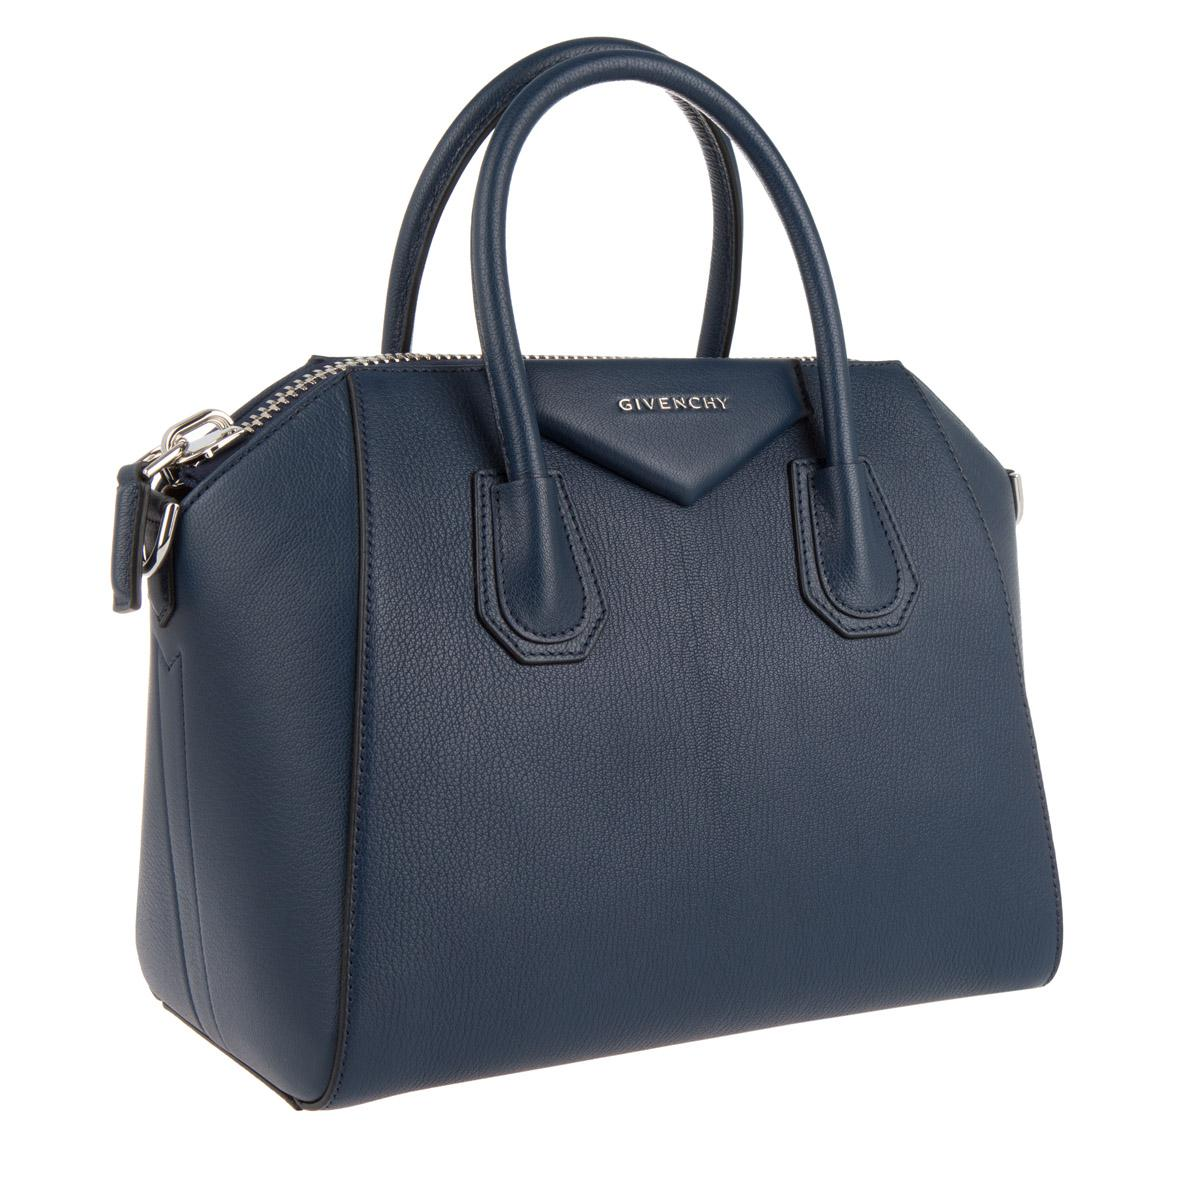 Givenchy Leather Antigona Small Tote Bag Blue